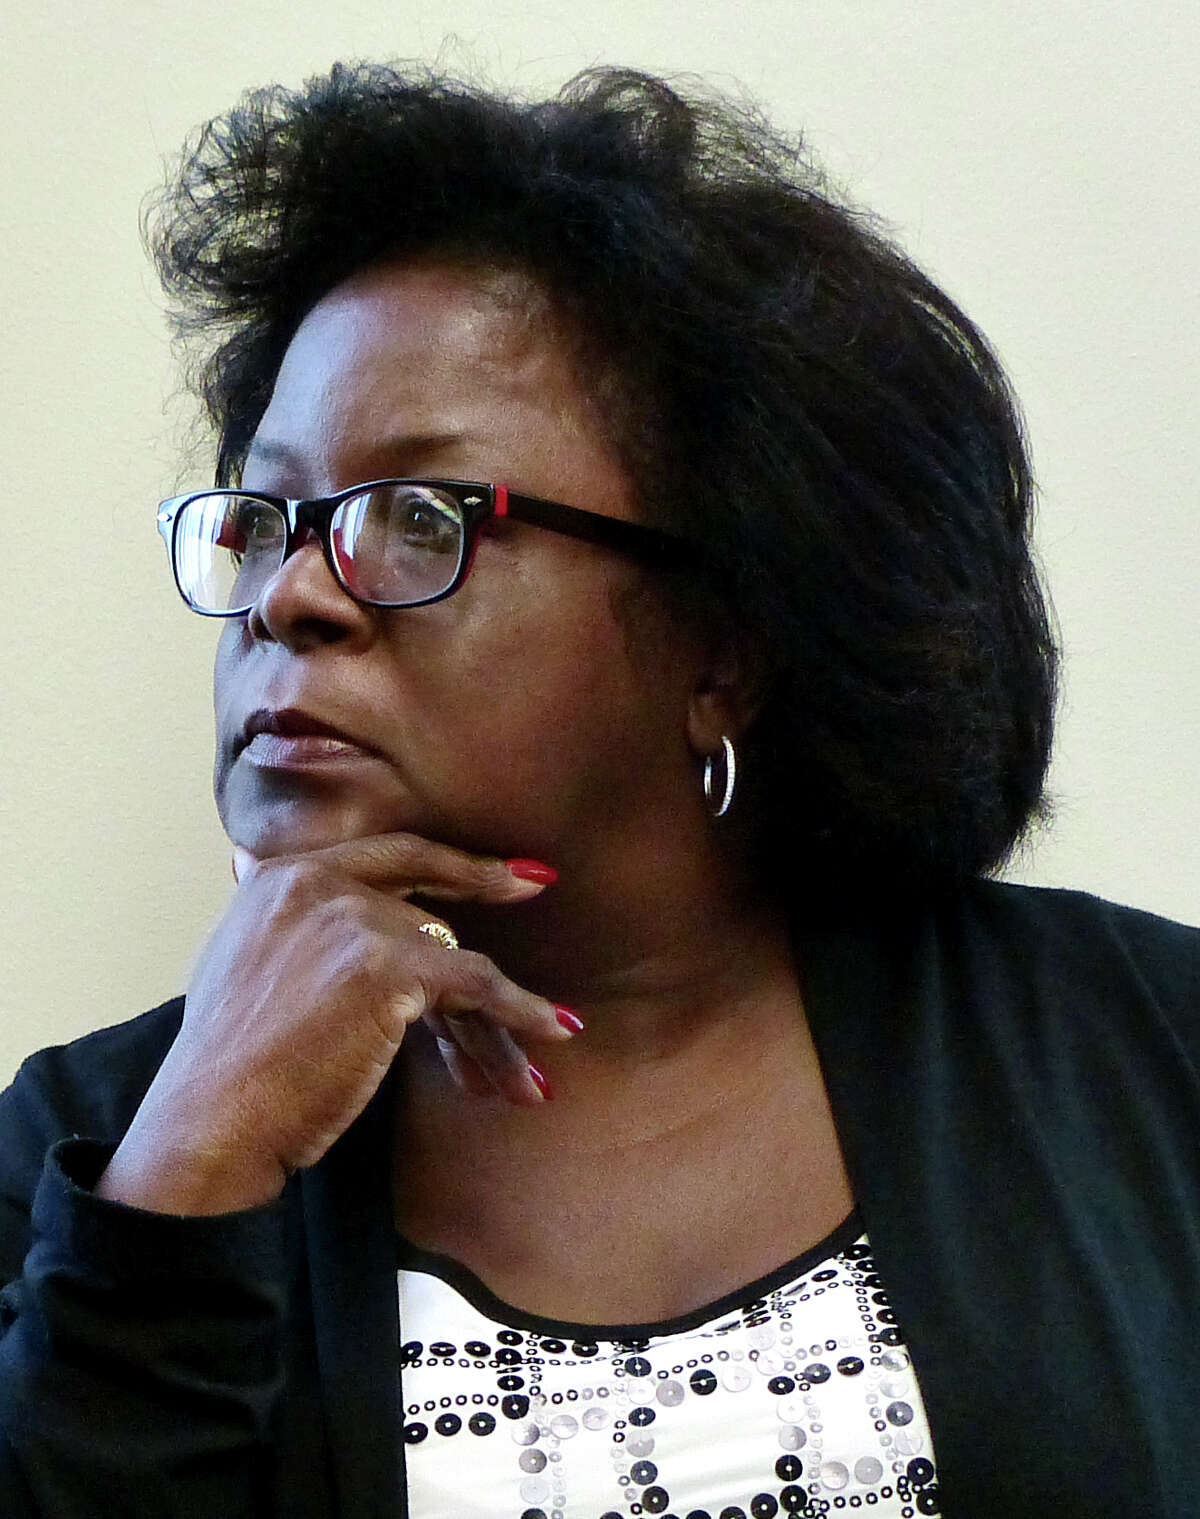 Tisdale School principal Carmen Perez Dickson attends a Bridgeport Board of Education disciplinary hearing against her at Bridgeport City Hall in Bridgeport, Conn. on Tuesday June 11, 2013.